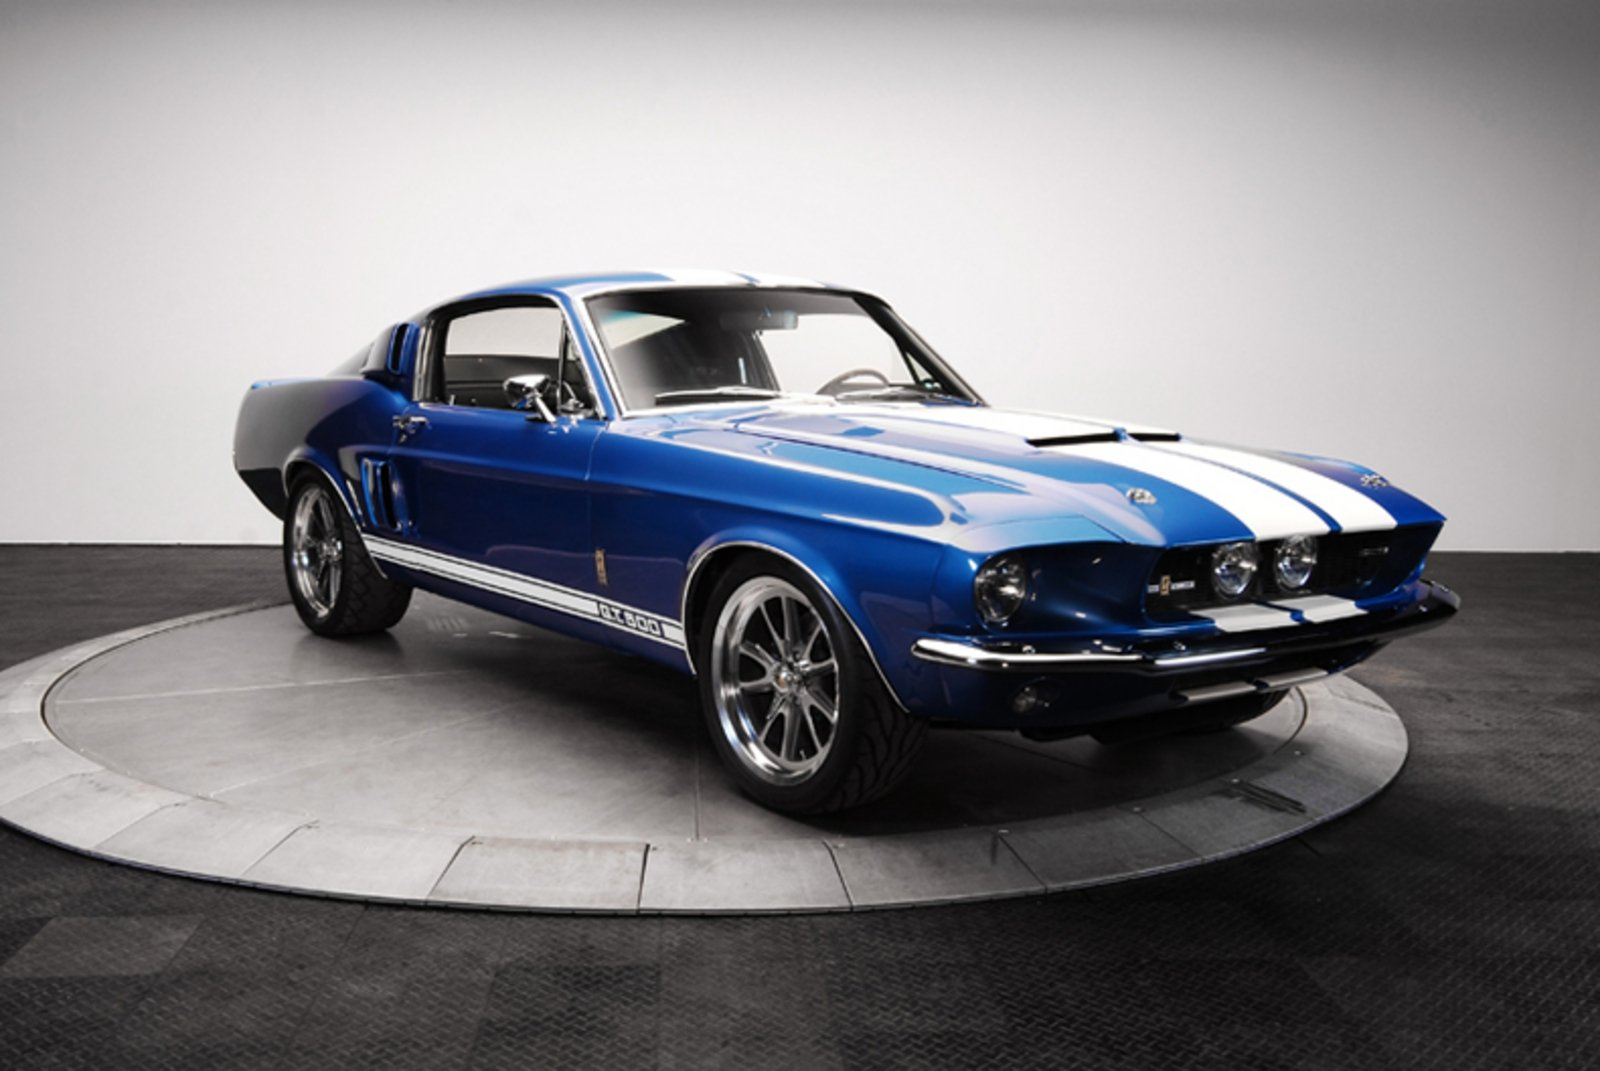 1967 shelby supercharged gt500 by rk motors review top speed. Black Bedroom Furniture Sets. Home Design Ideas